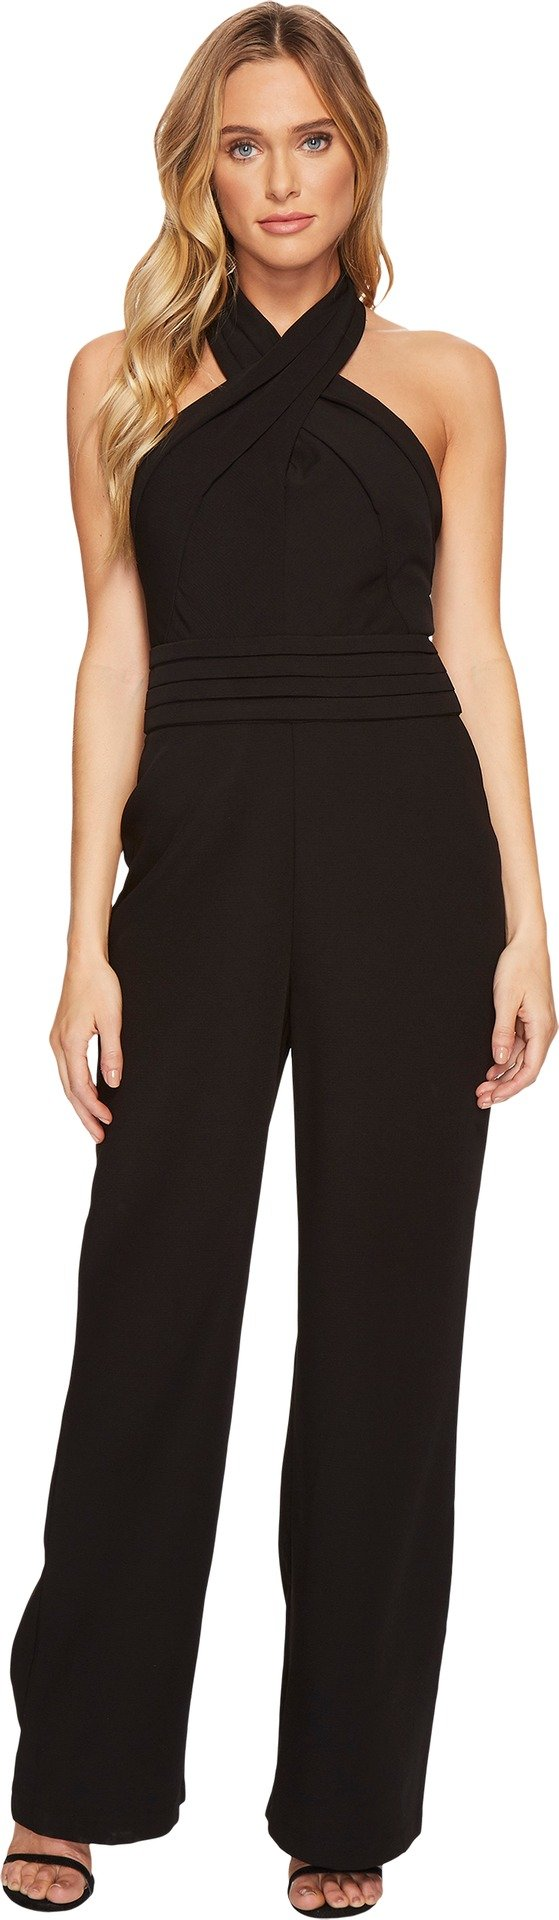 Adelyn Rae Women's Cindy Jumpsuit Black Small